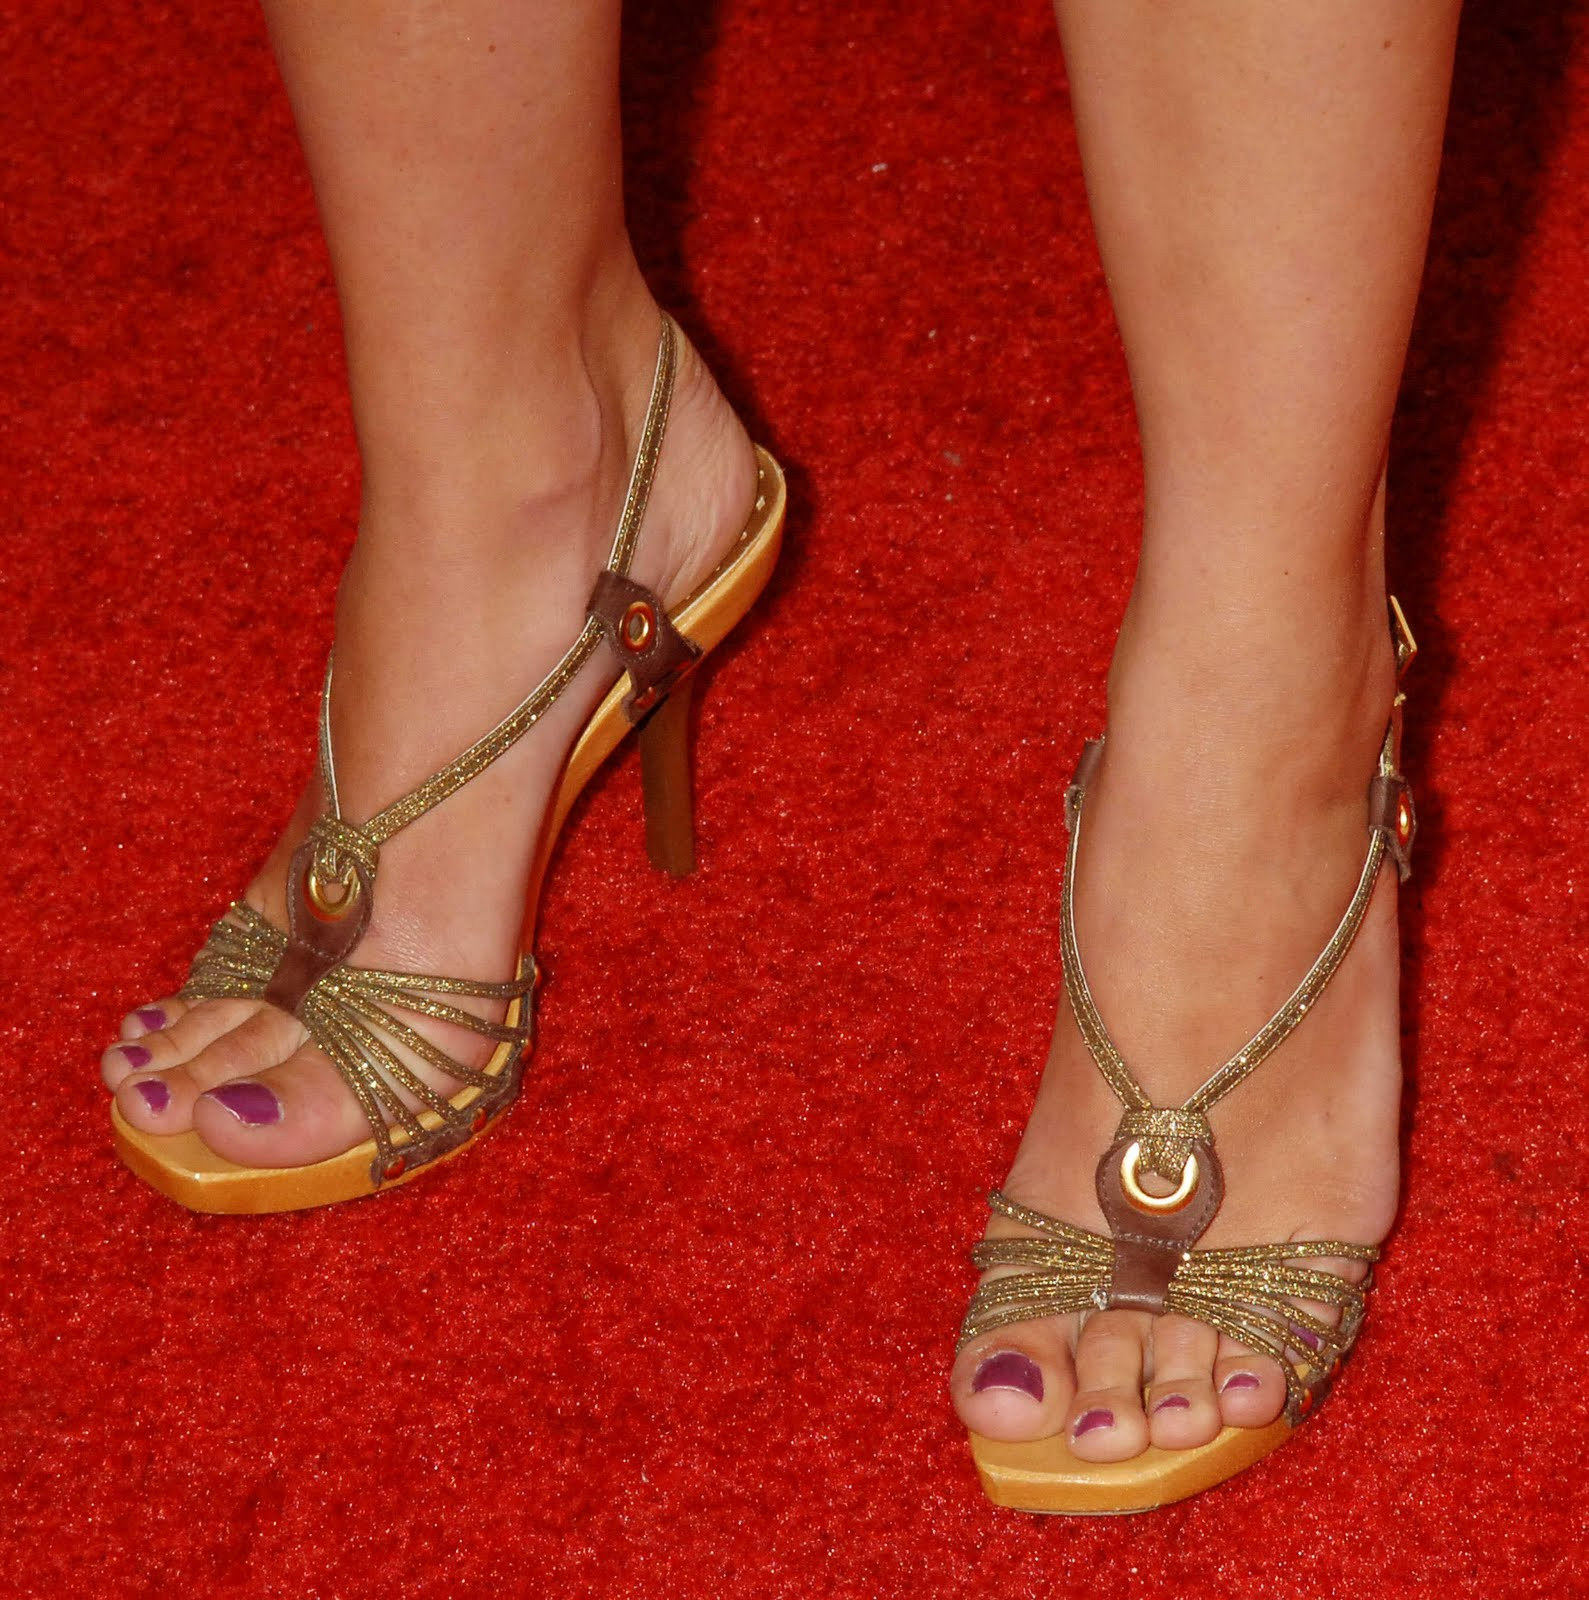 Feet Aimee Teegarden naked (82 photo), Pussy, Paparazzi, Feet, lingerie 2020